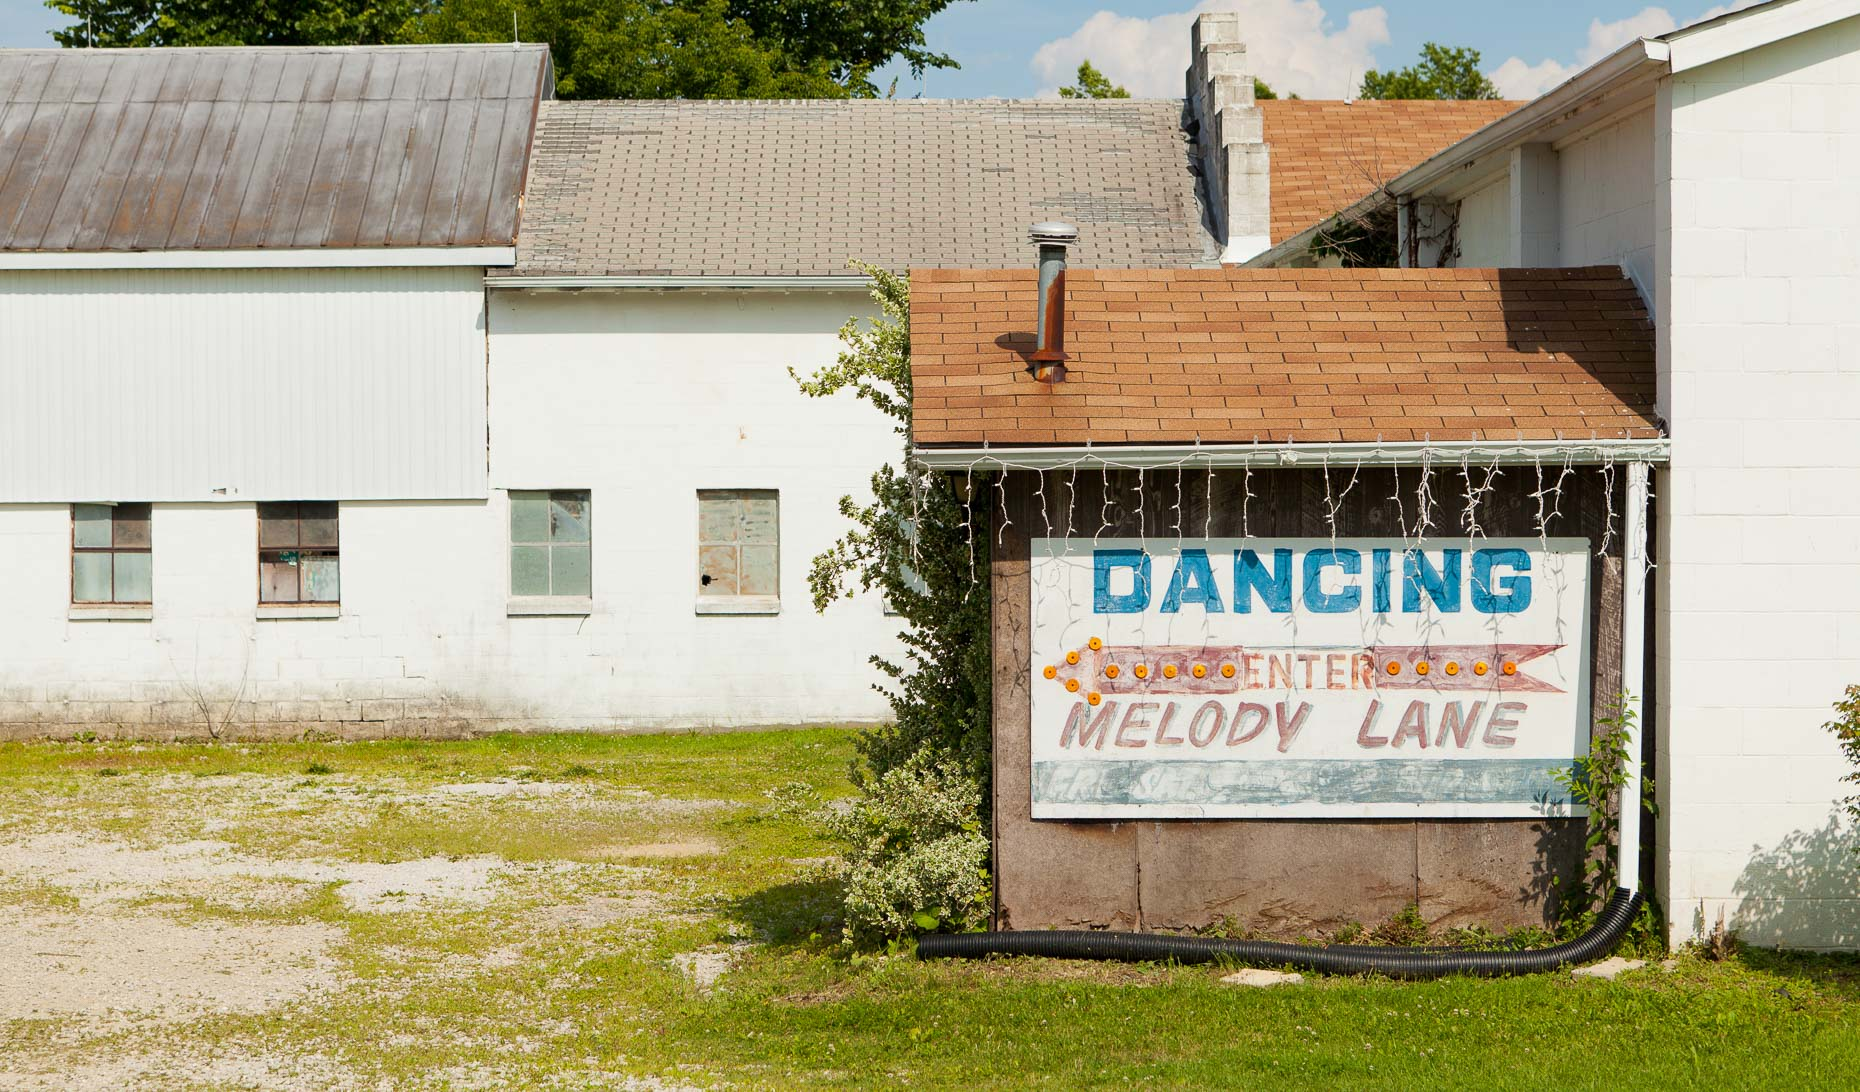 Sign on building DANCING ENTER MELODY LANE by David Zaitz